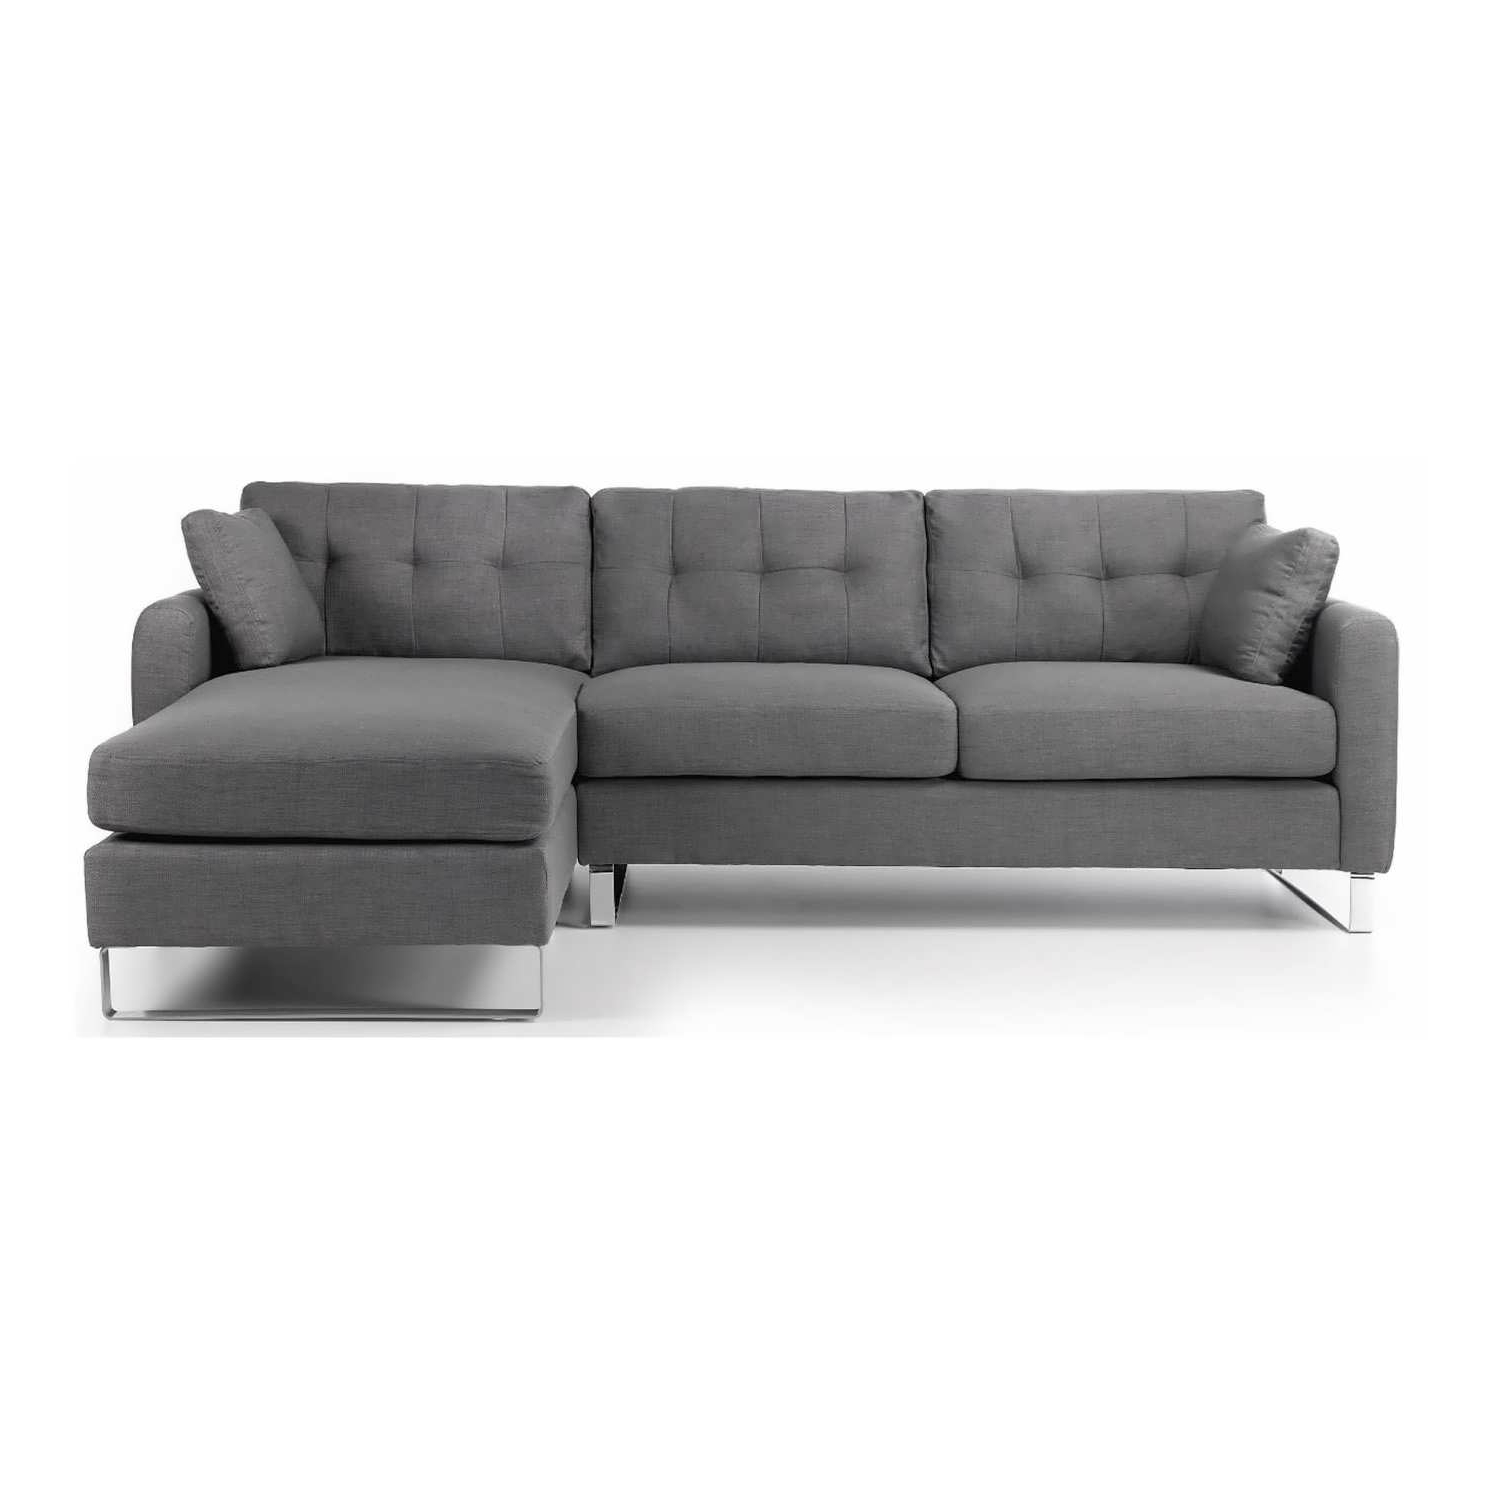 Sofa : Brown Leather Sectional Sectional Sofa Bed Small Sofa For Best And Newest Sofa Beds With Chaise (View 7 of 15)